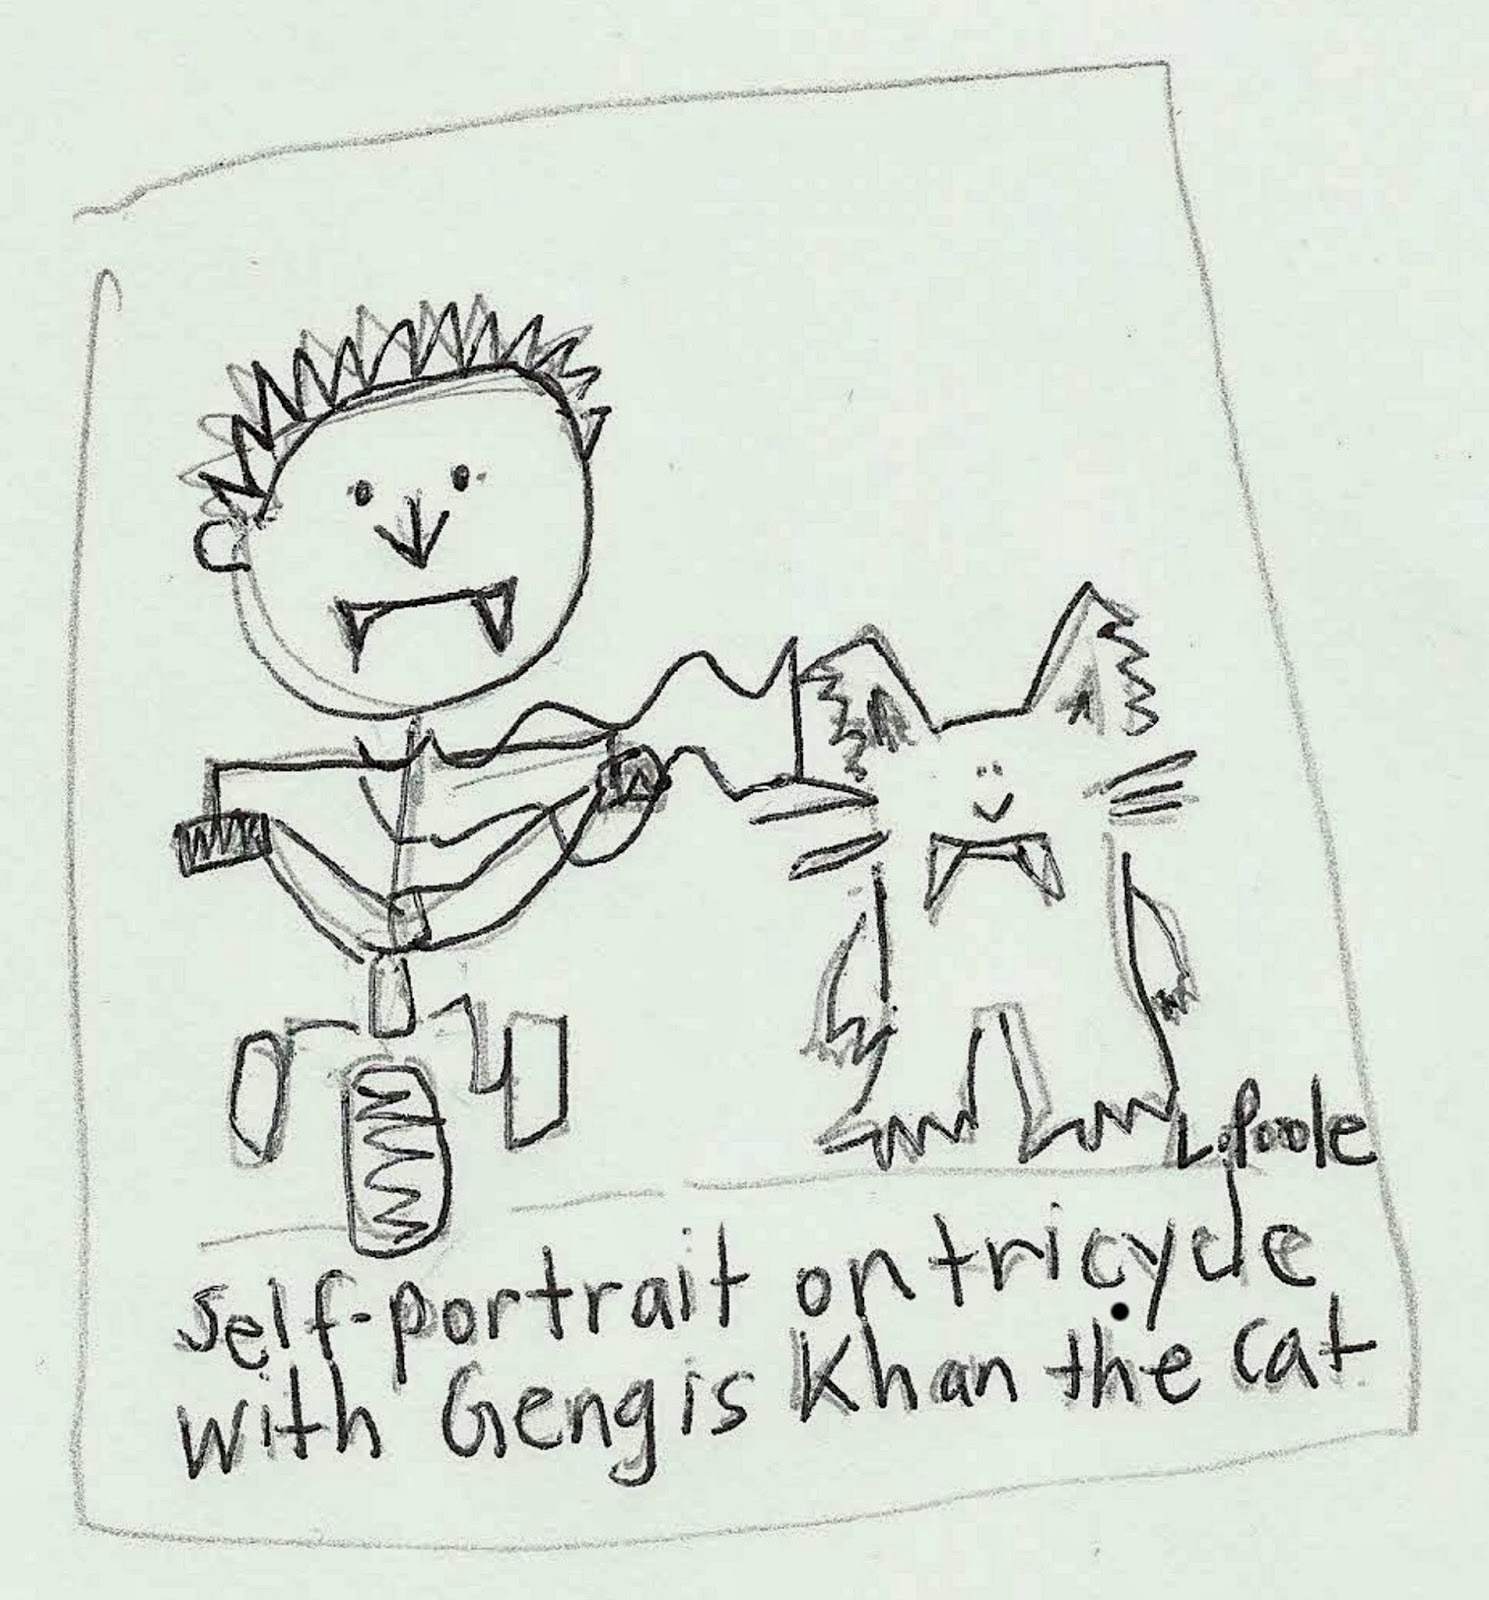 A sketch of a vampire baby riding a tricycle next to a cat.